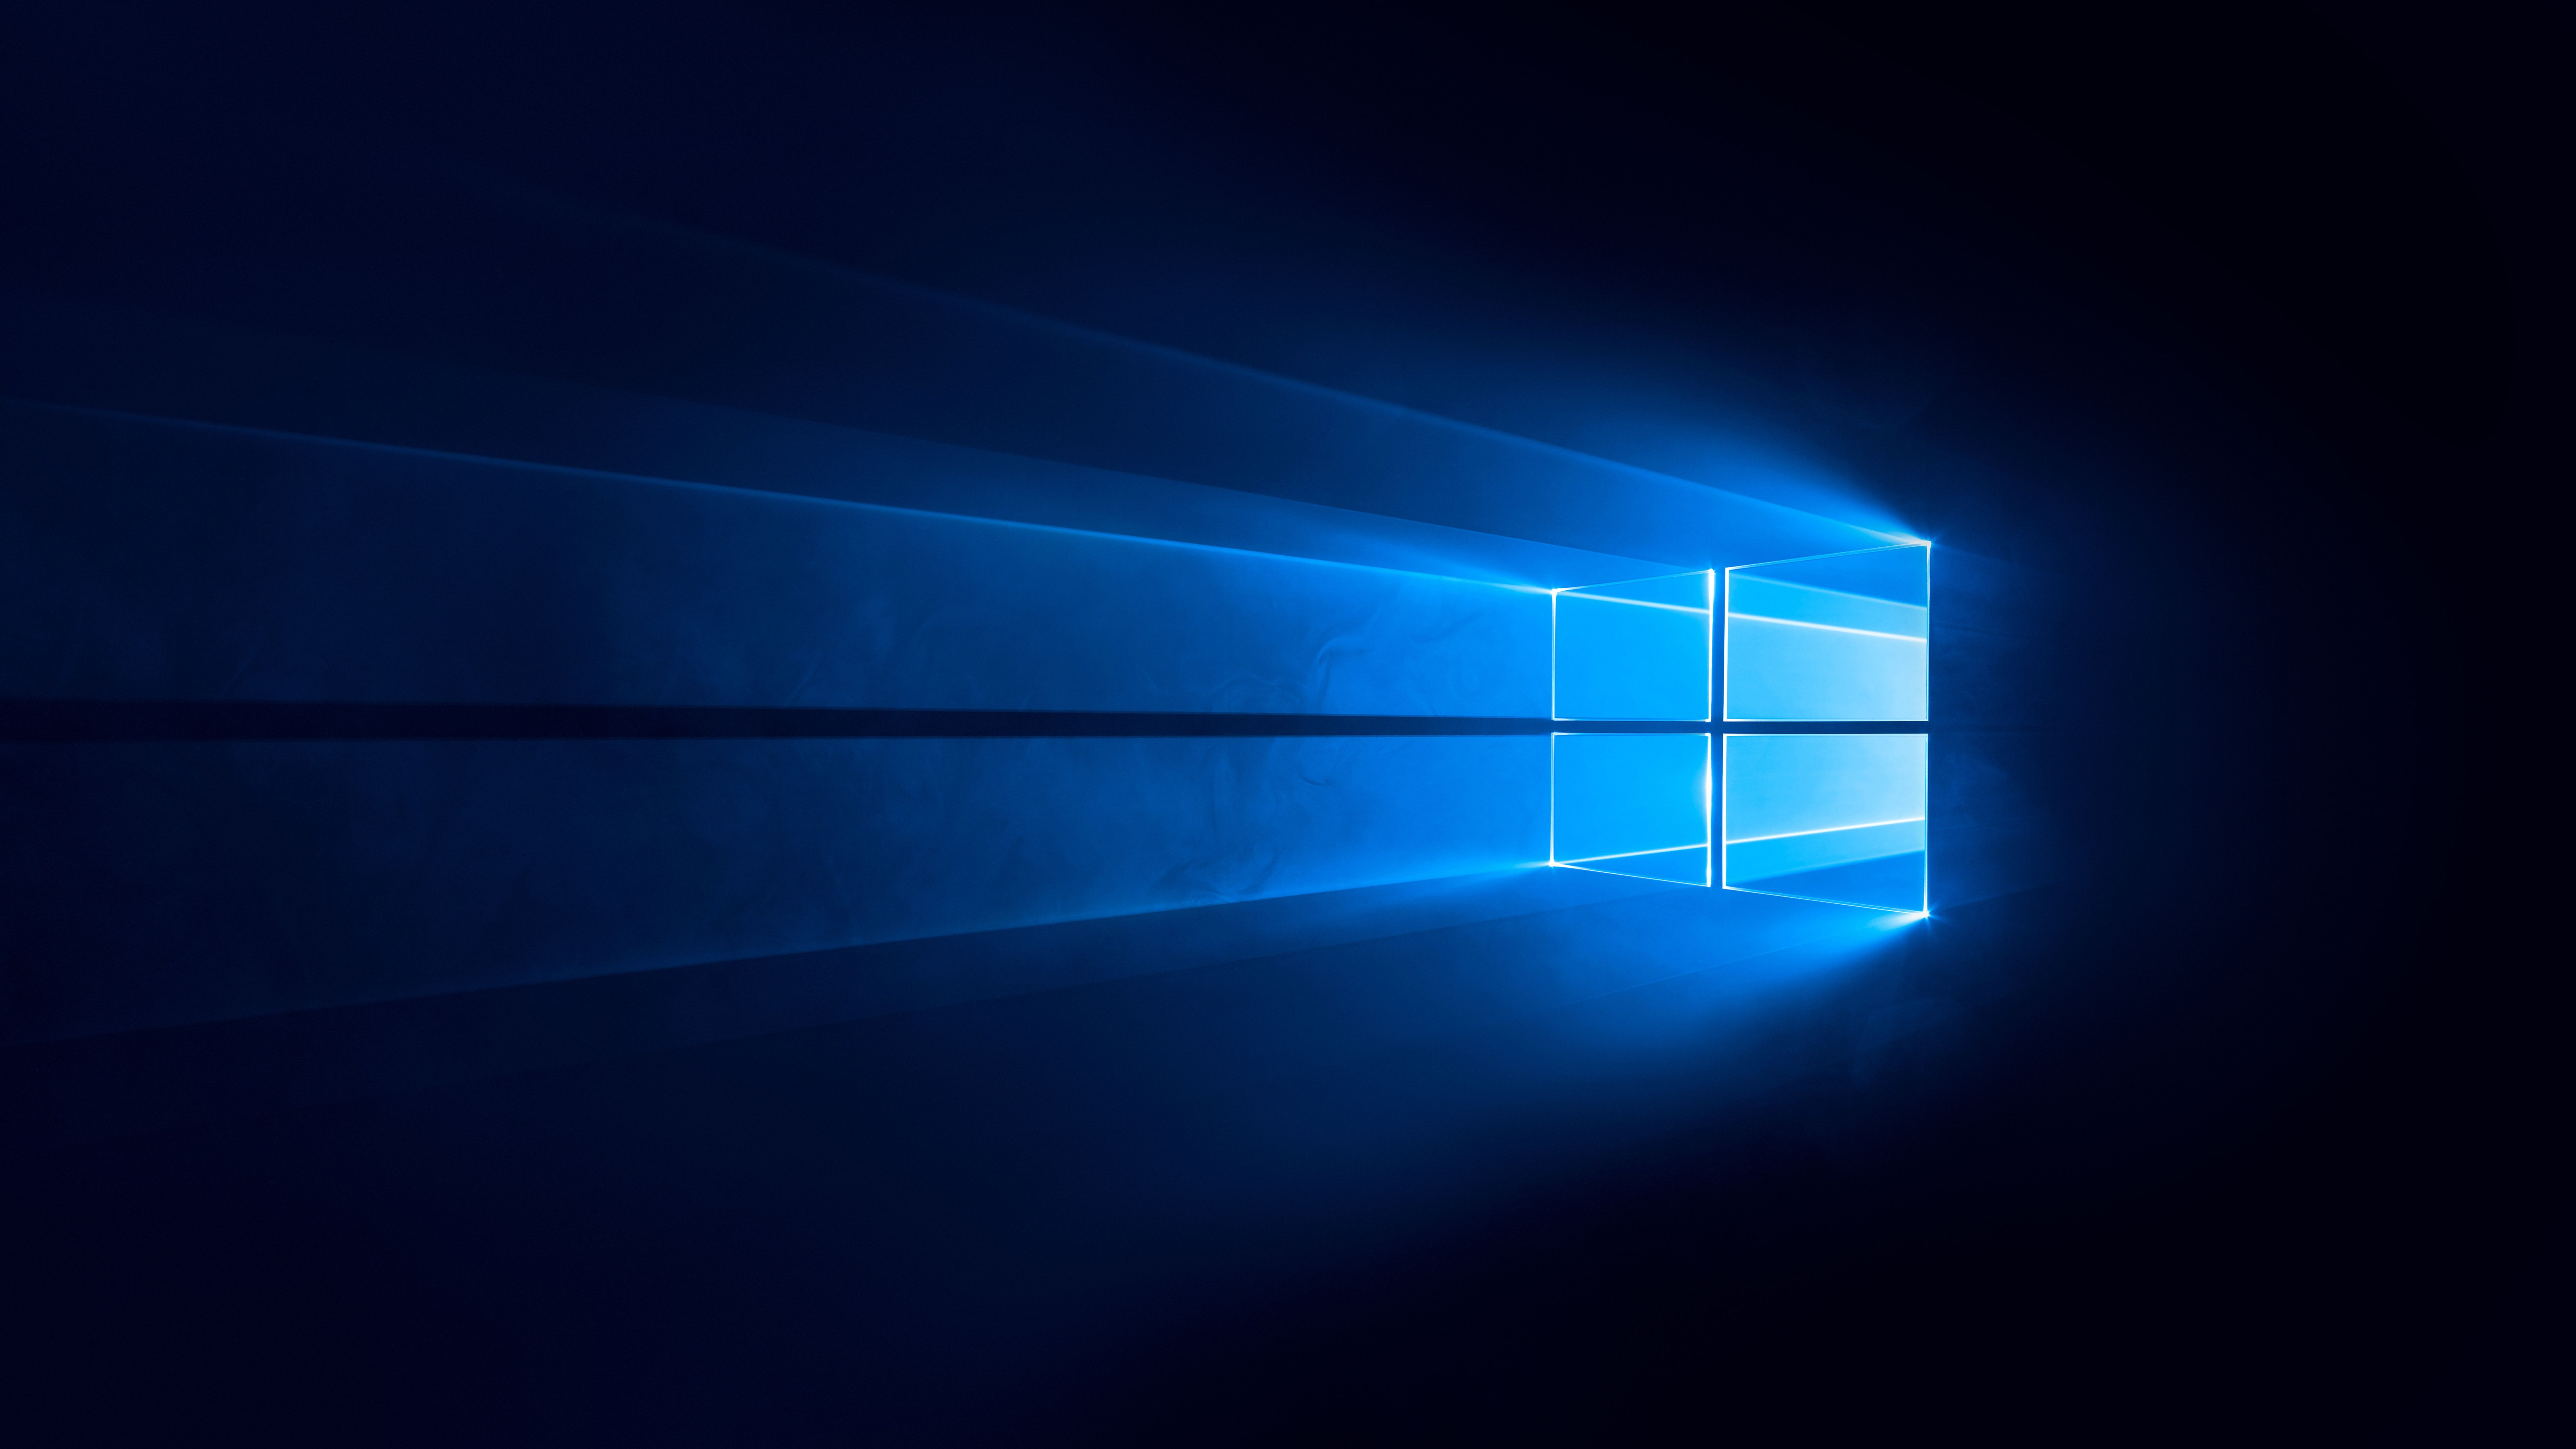 Cool Backgrounds Windows 10